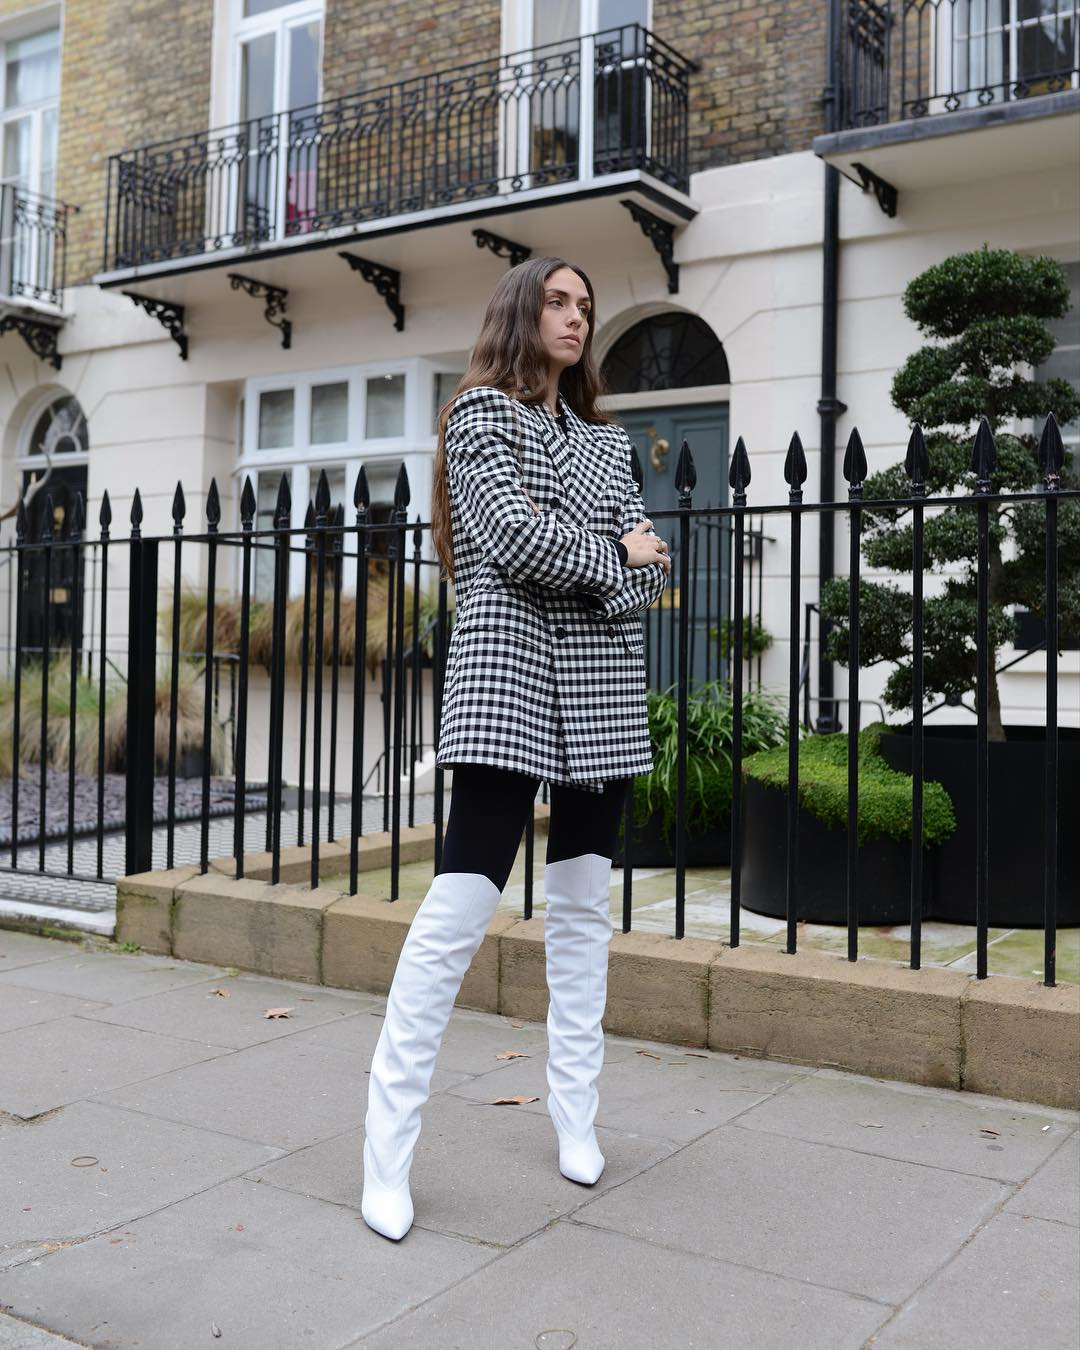 erika-boldrin-givenchy-white-leather-knee-high-boots-london-fashion-week-fall-2019-street-style